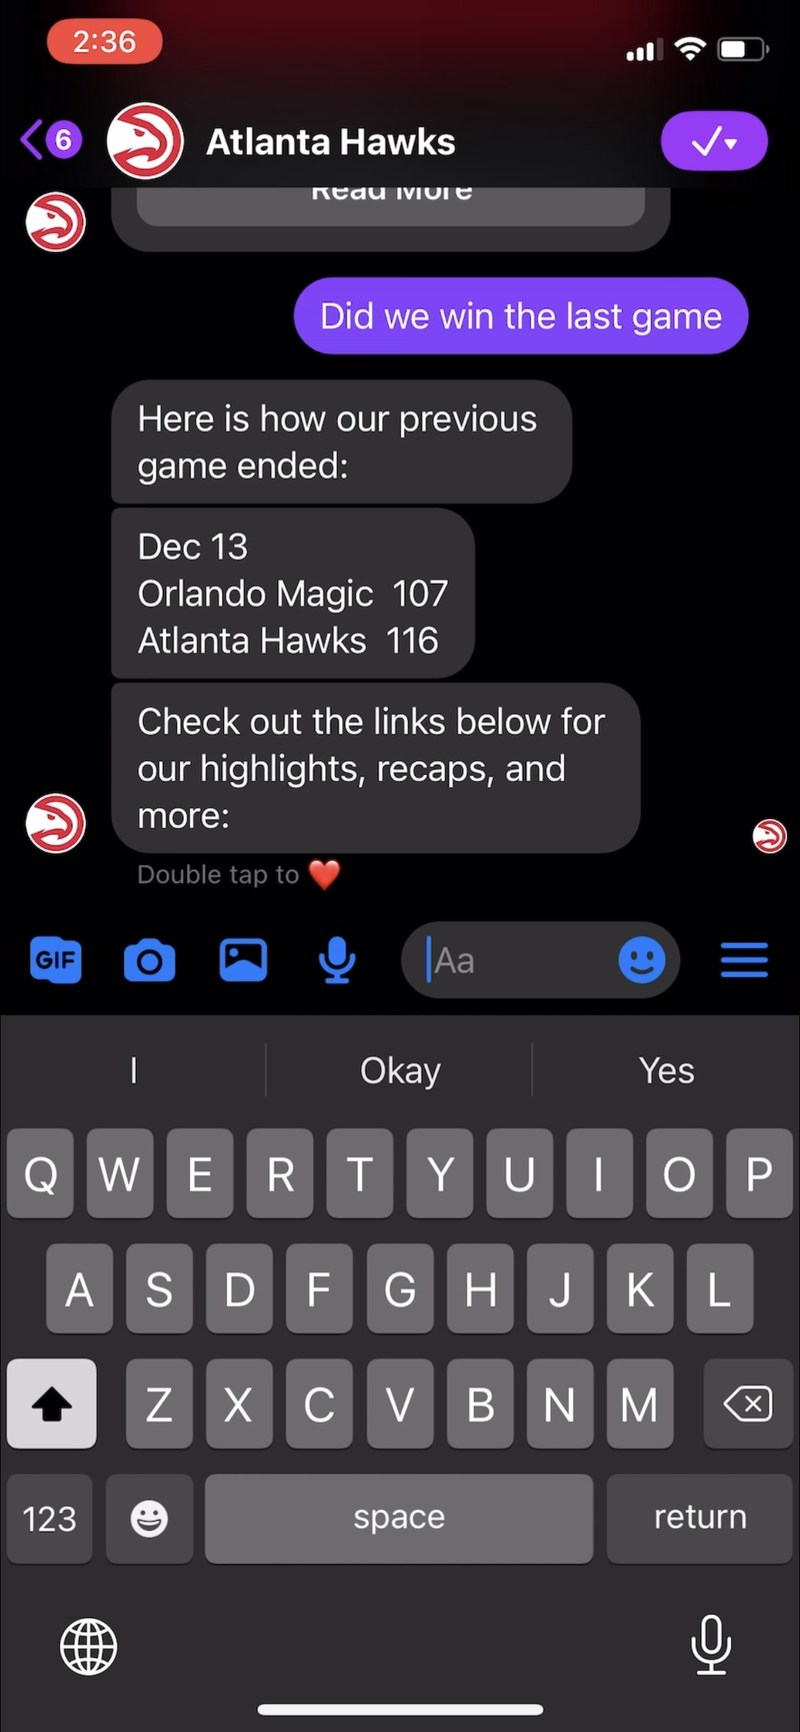 Screen capture for the Atlanta Hawks chat application powered by GameOn Technology.